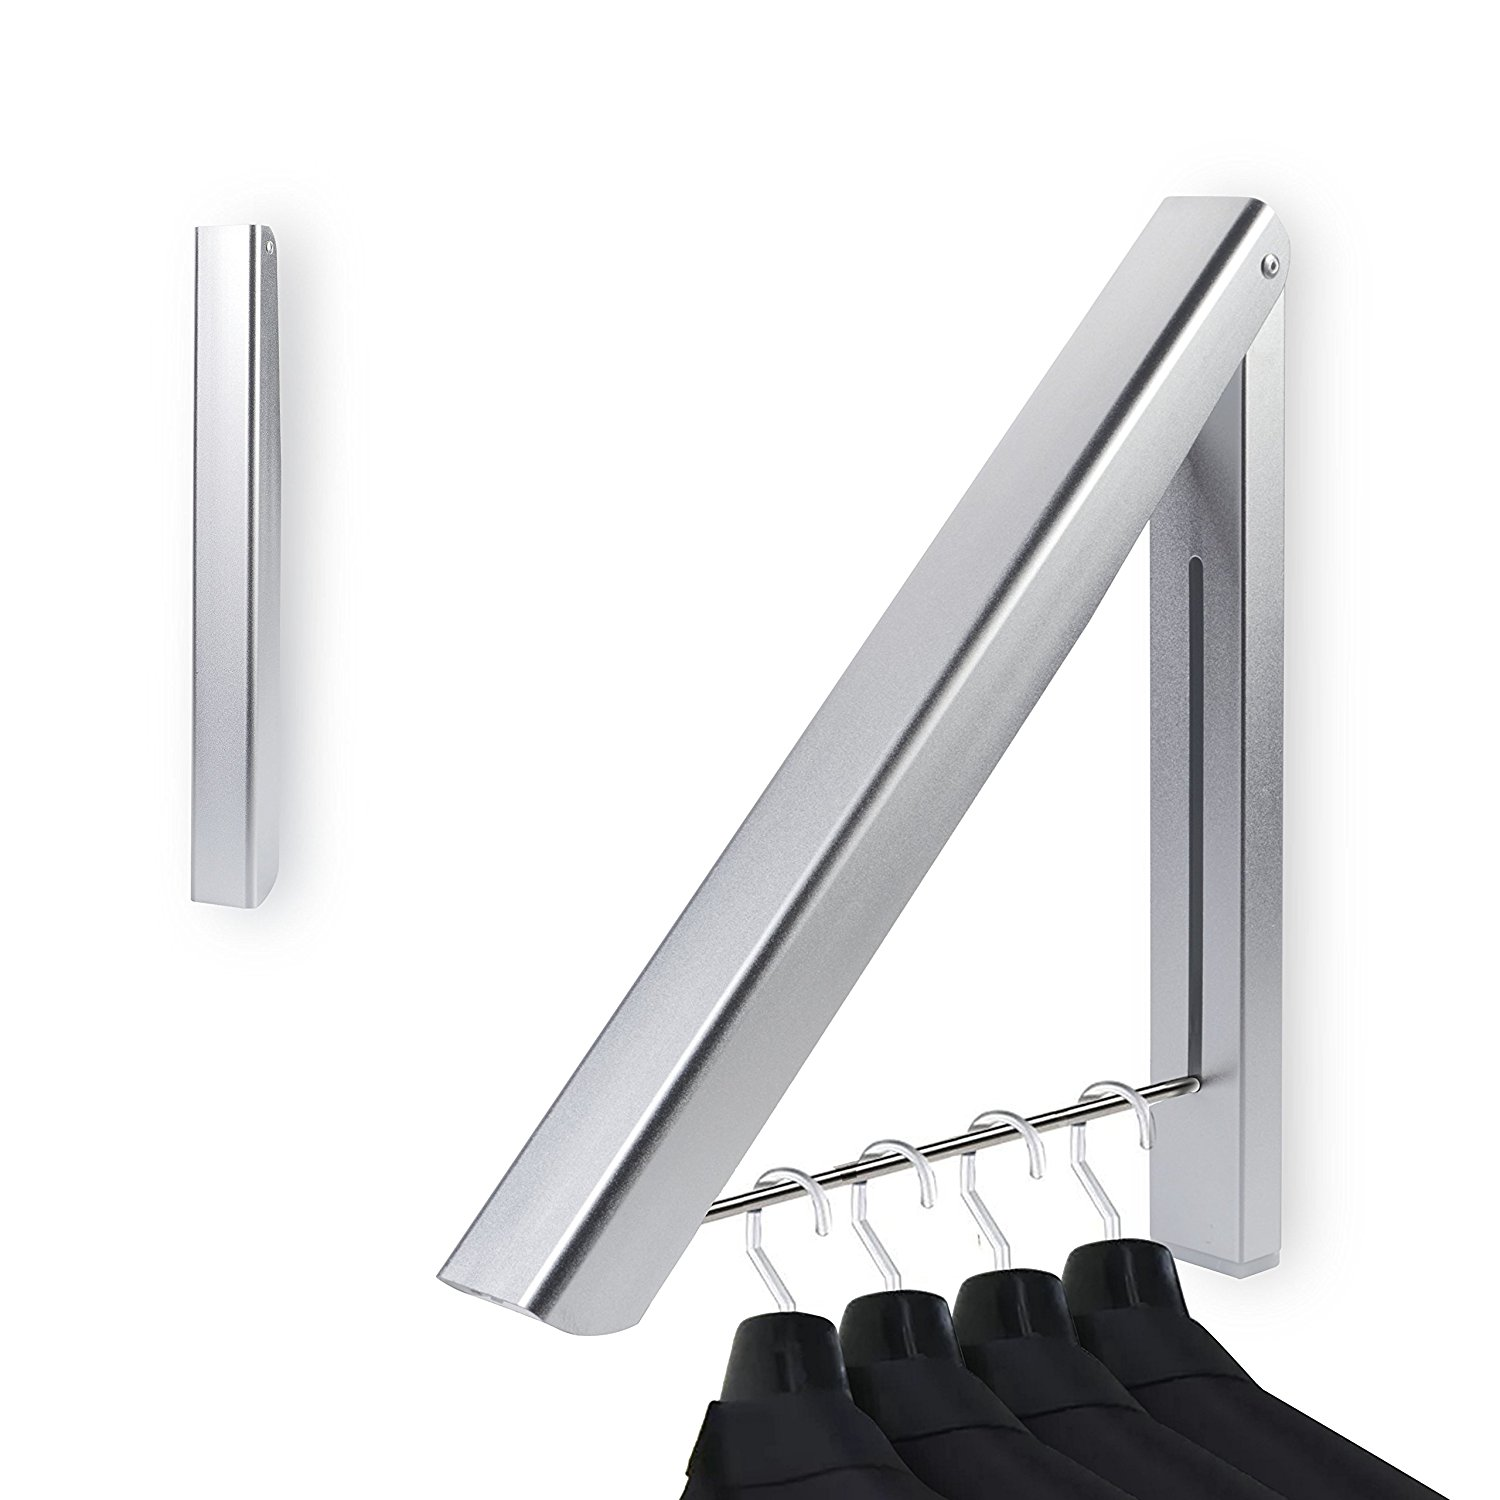 27kg Wall Mounted Clothes Airer Washing Line Coat Shirt Dryer Folding/Pull out Wall Hanger Space Saving Clothes Cupboard Storage